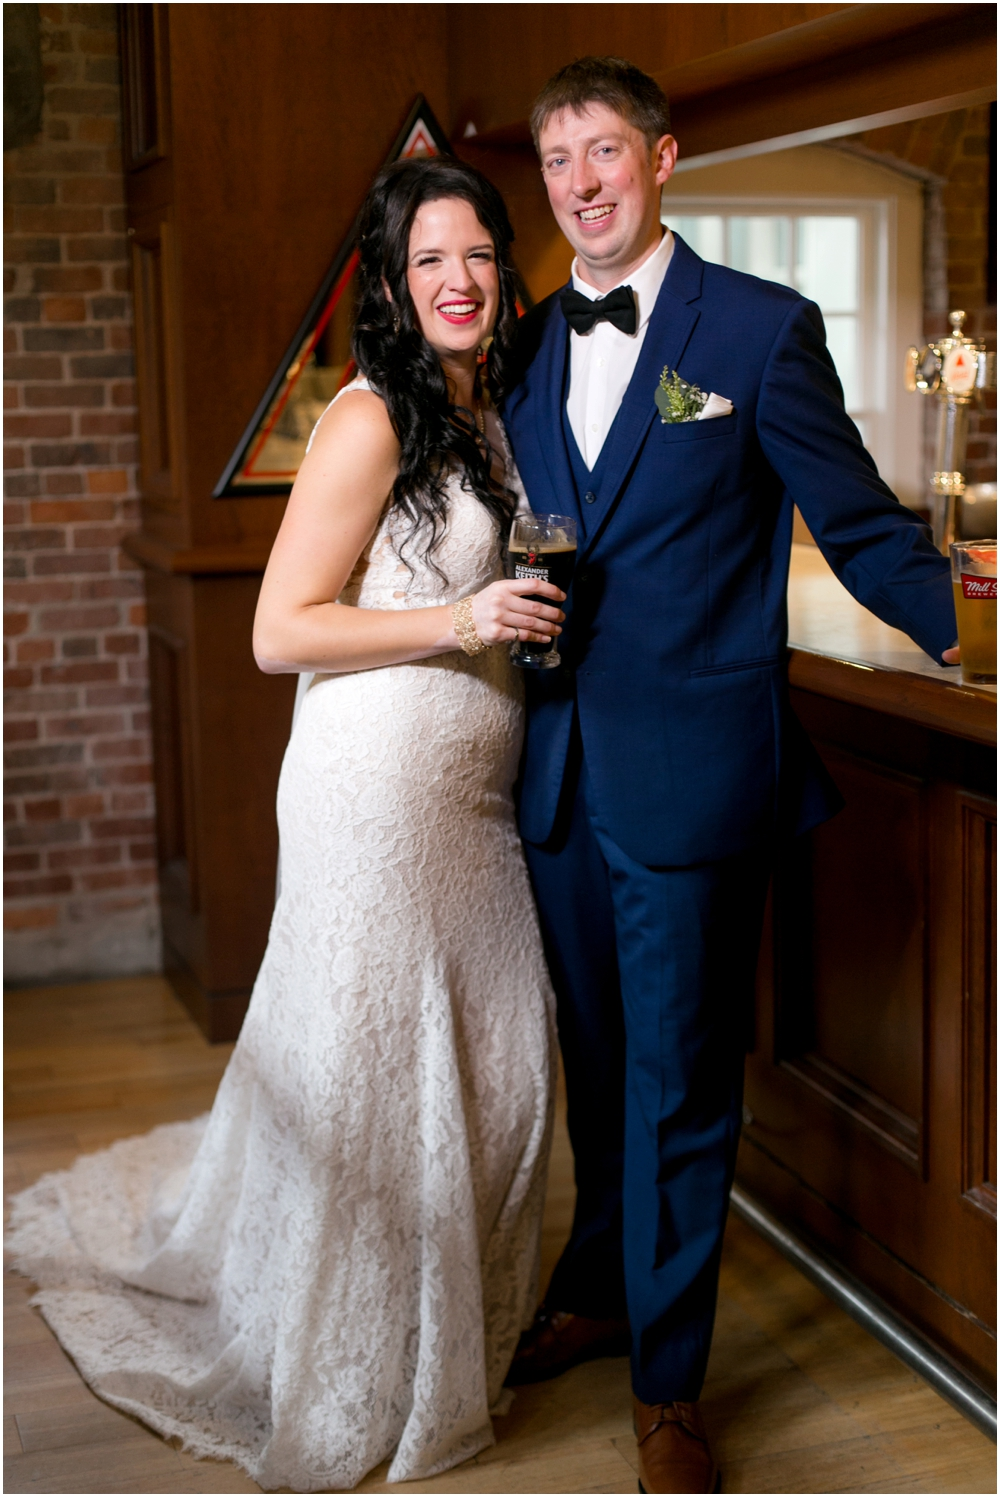 Keith's-Brewery-Wedding-Chantal-Ruthier-Photography_0014.jpg